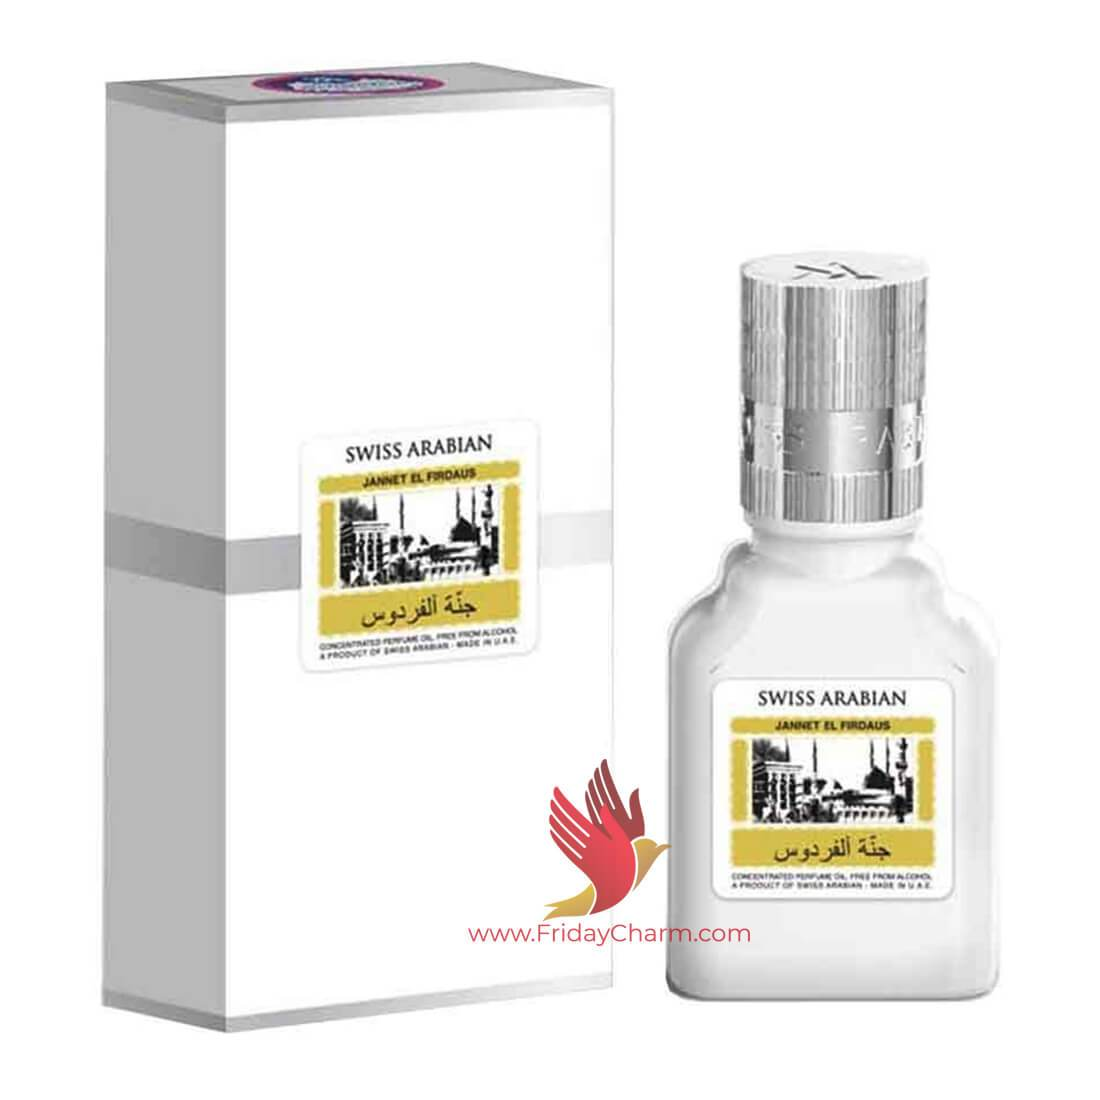 Swiss Arabian Jannat ul Firdaus 9ml Attar Black & White Pack of 2